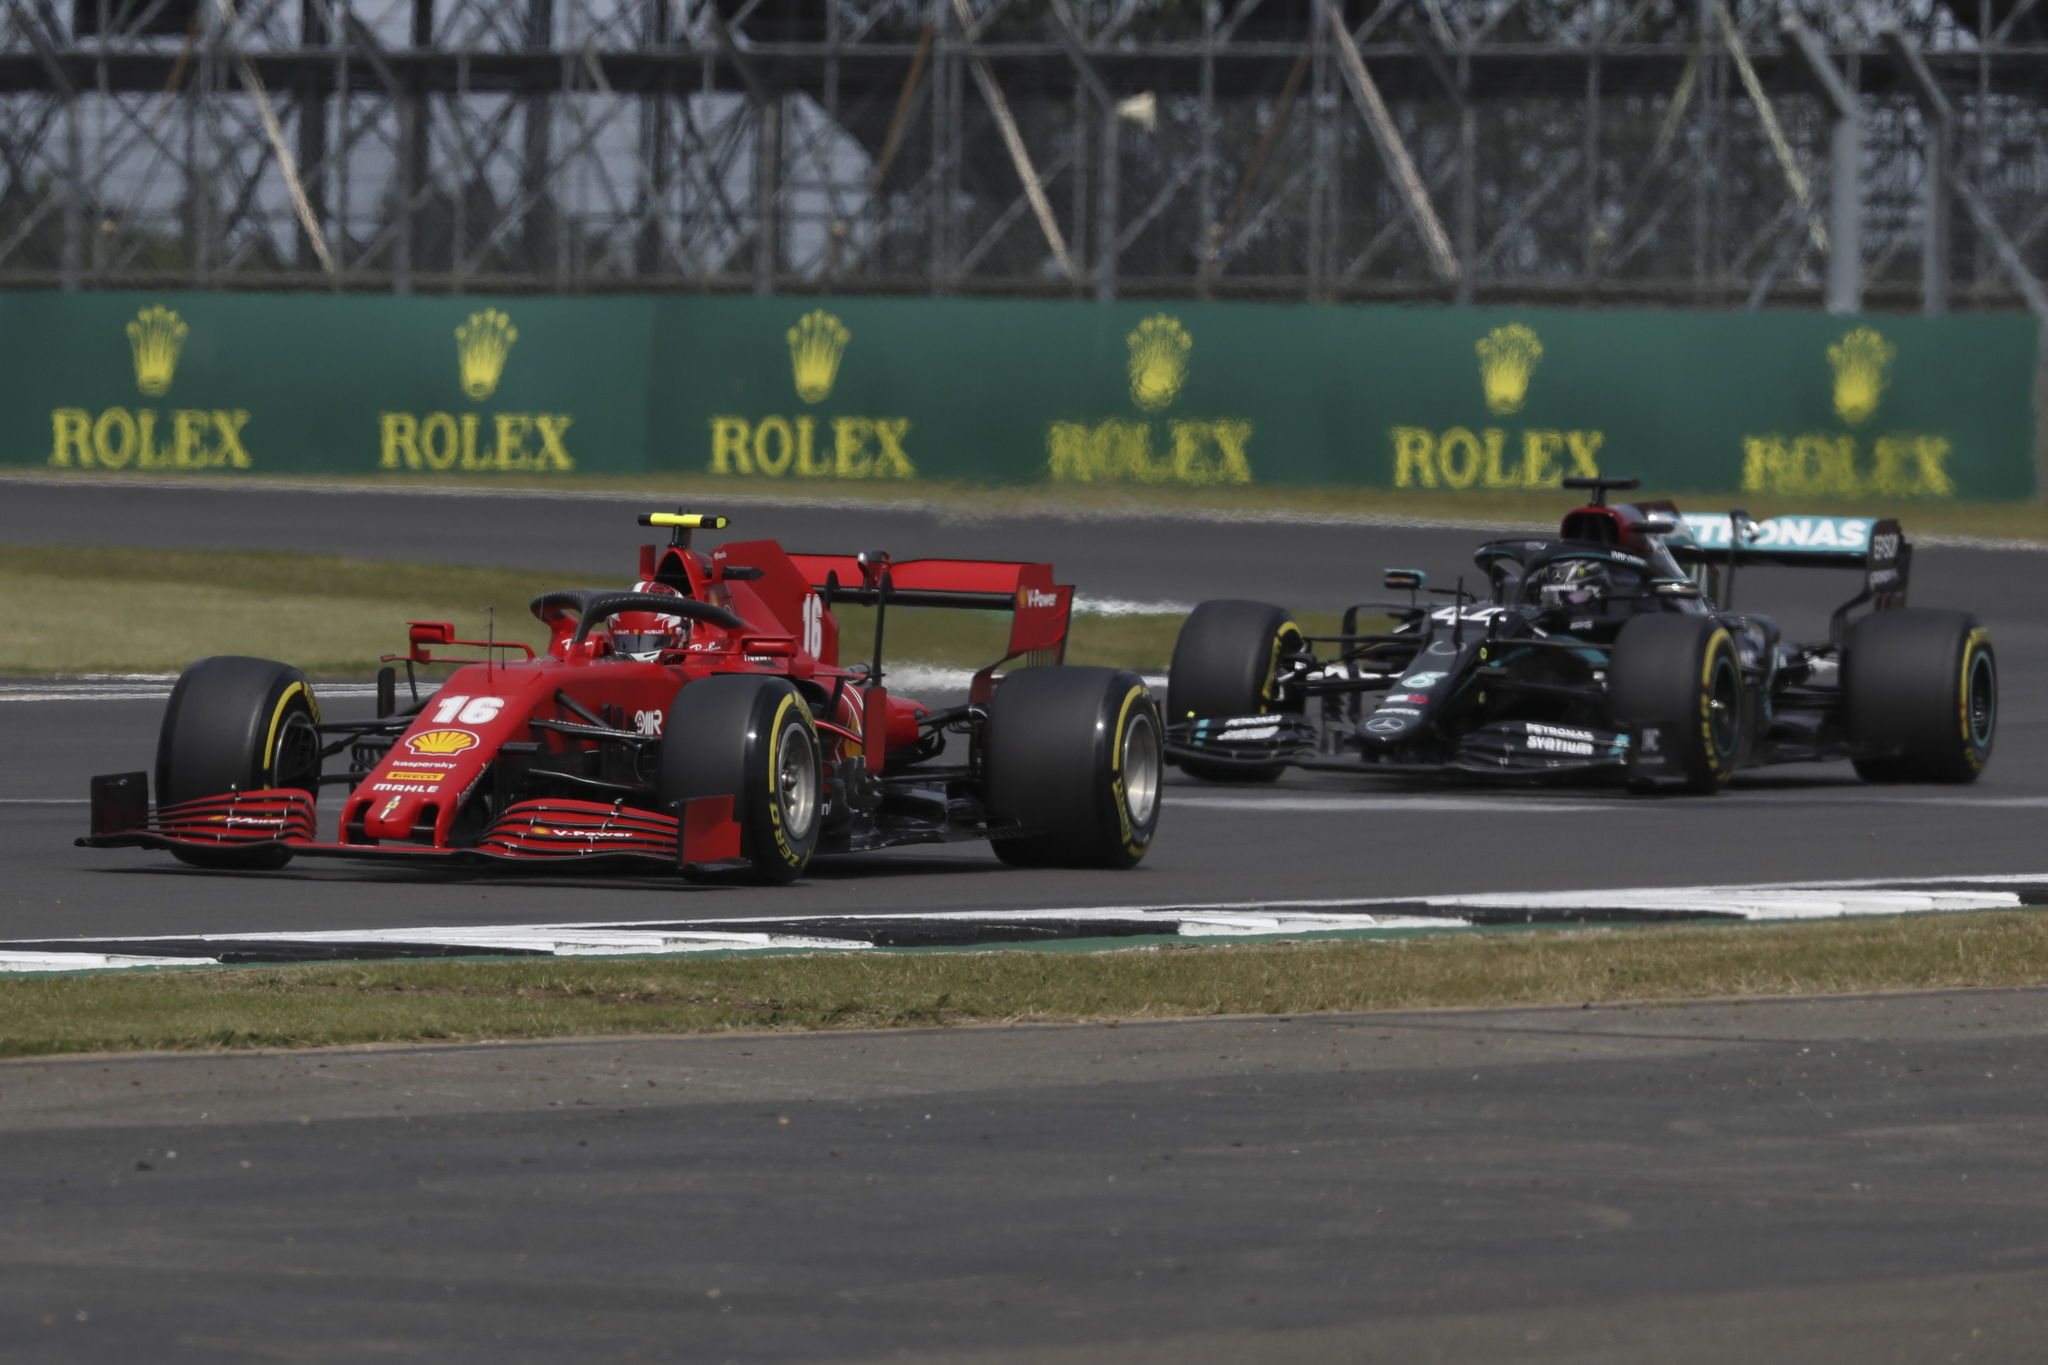 Silverstone (United Kingdom), 08/08/2020.- Monacos Formula One driver Charles lt;HIT gt;Leclerc lt;/HIT gt; of Scuderia Ferrari (L) and British Formula One driver Lewis Hamilton of Mercedes-AMG Petronas (R) in action during the qualifying session of the 70th Anniversary Formula One Grand Prix in Silverstone, Britain, 08 August 2020. (Fórmula Uno, Reino Unido) EFE/EPA/Frank Augstein / Pool